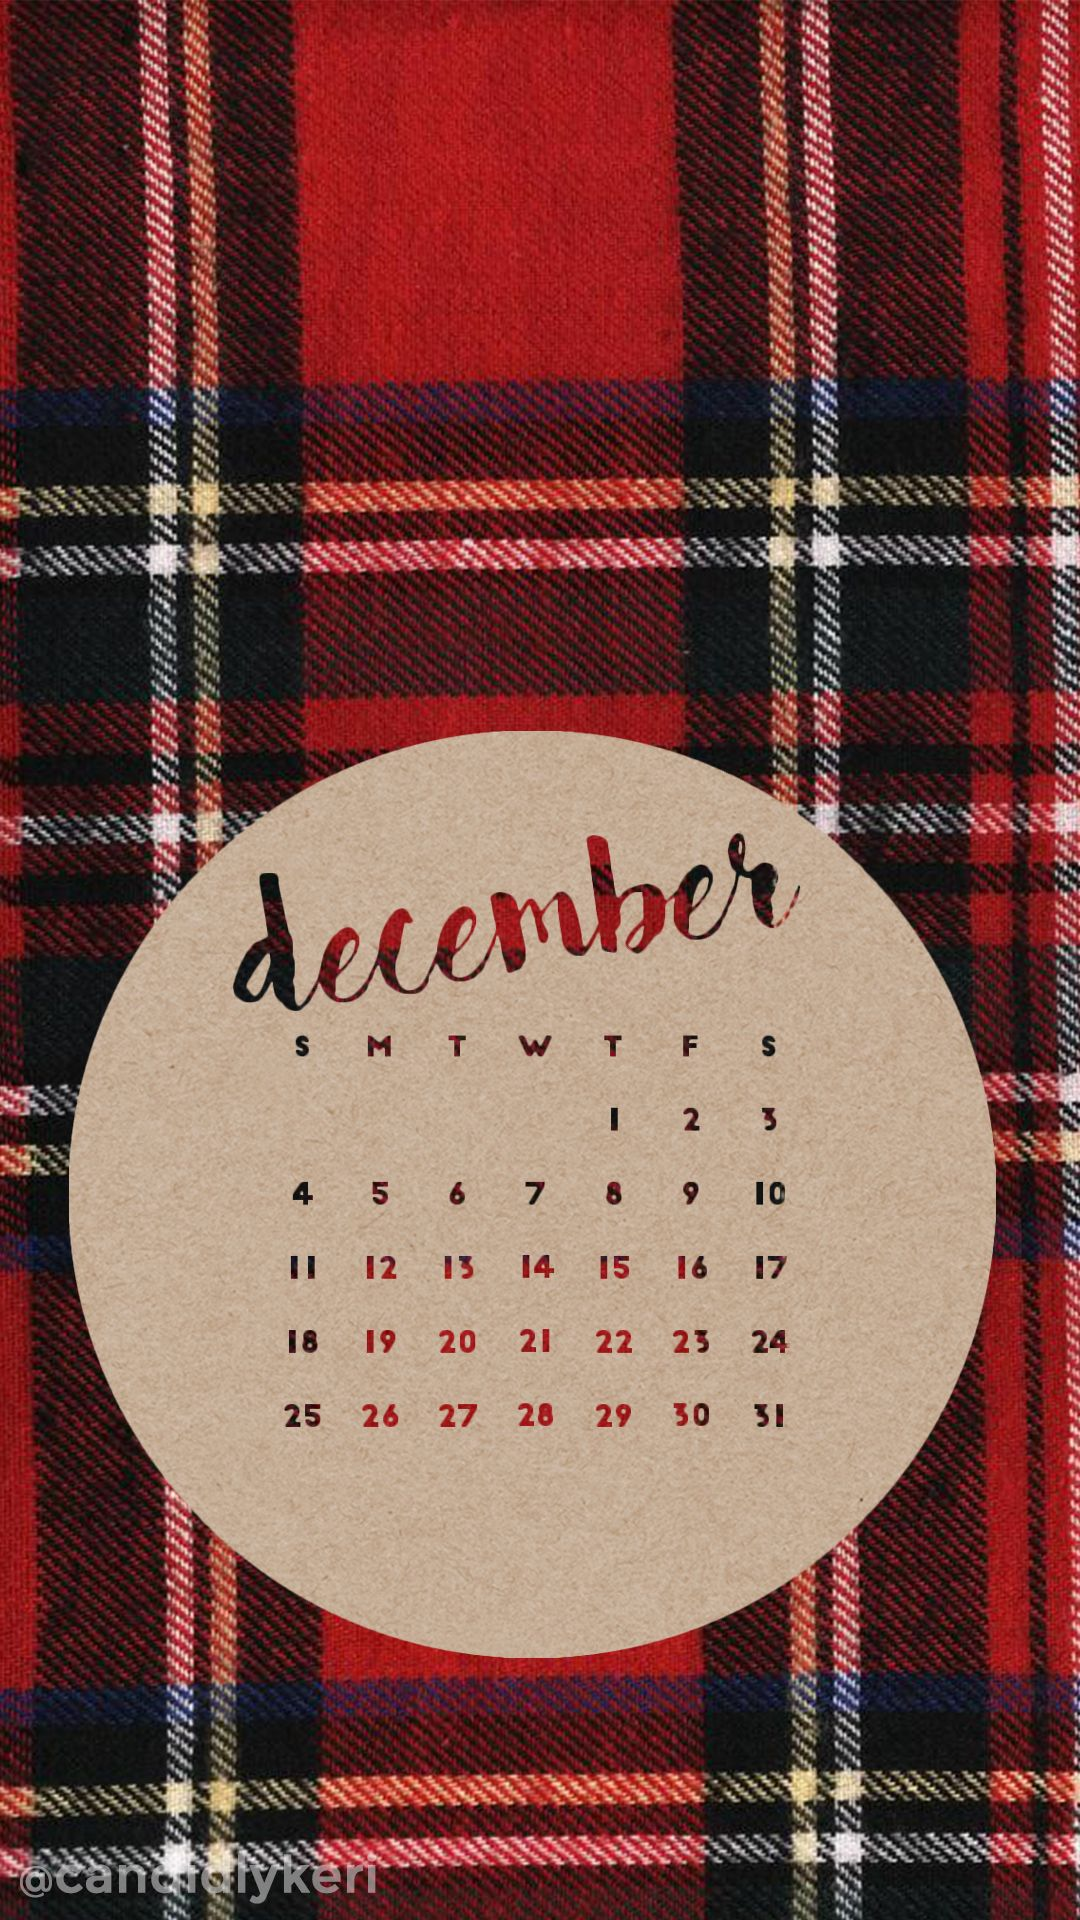 Flannel red plaid December calendar 2016 wallpaper you can